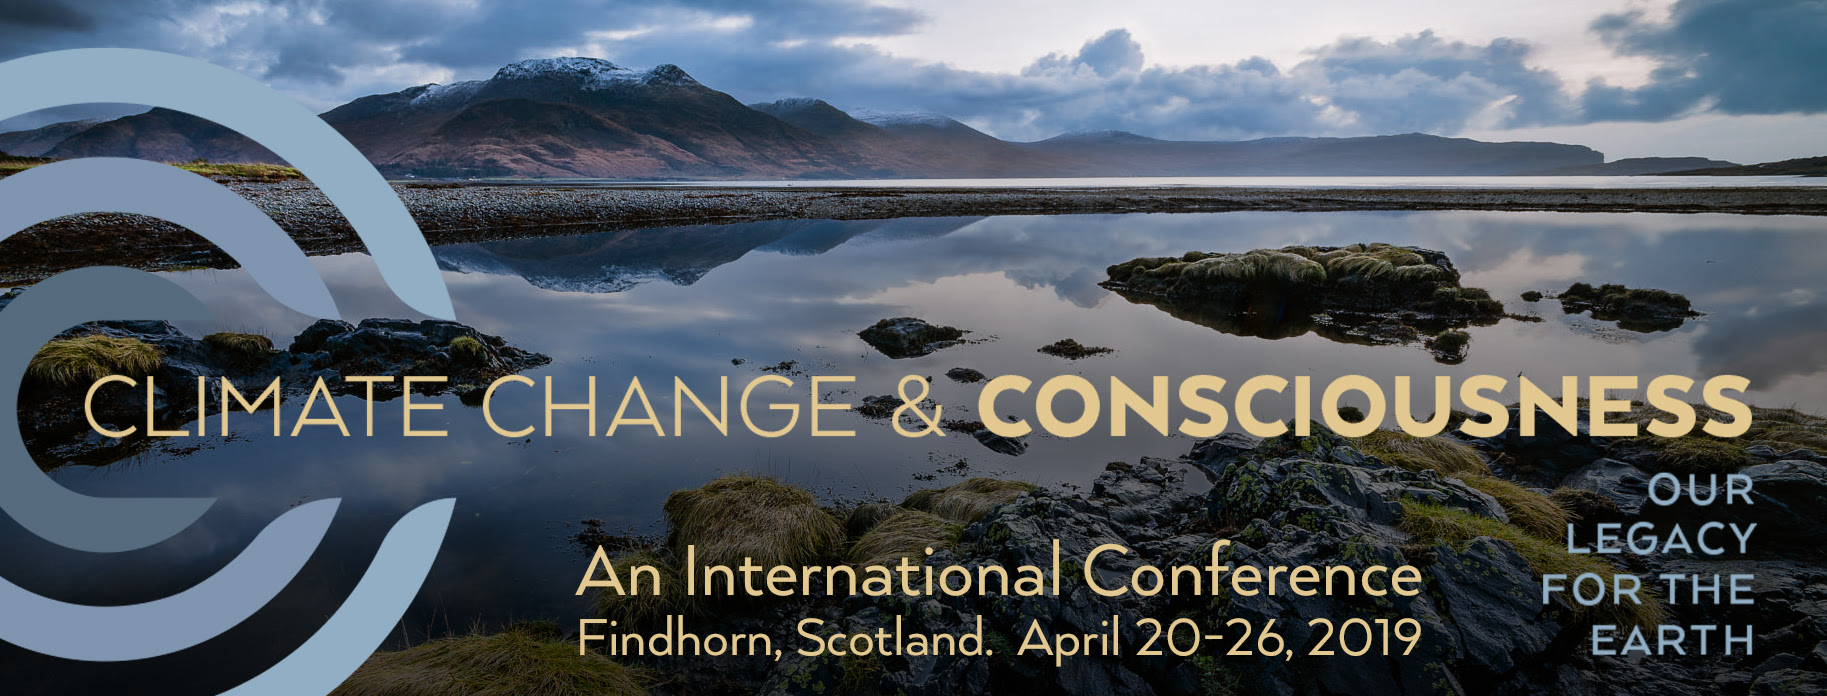 climate change consciousness conference, Findhorn Ecovillage 2019